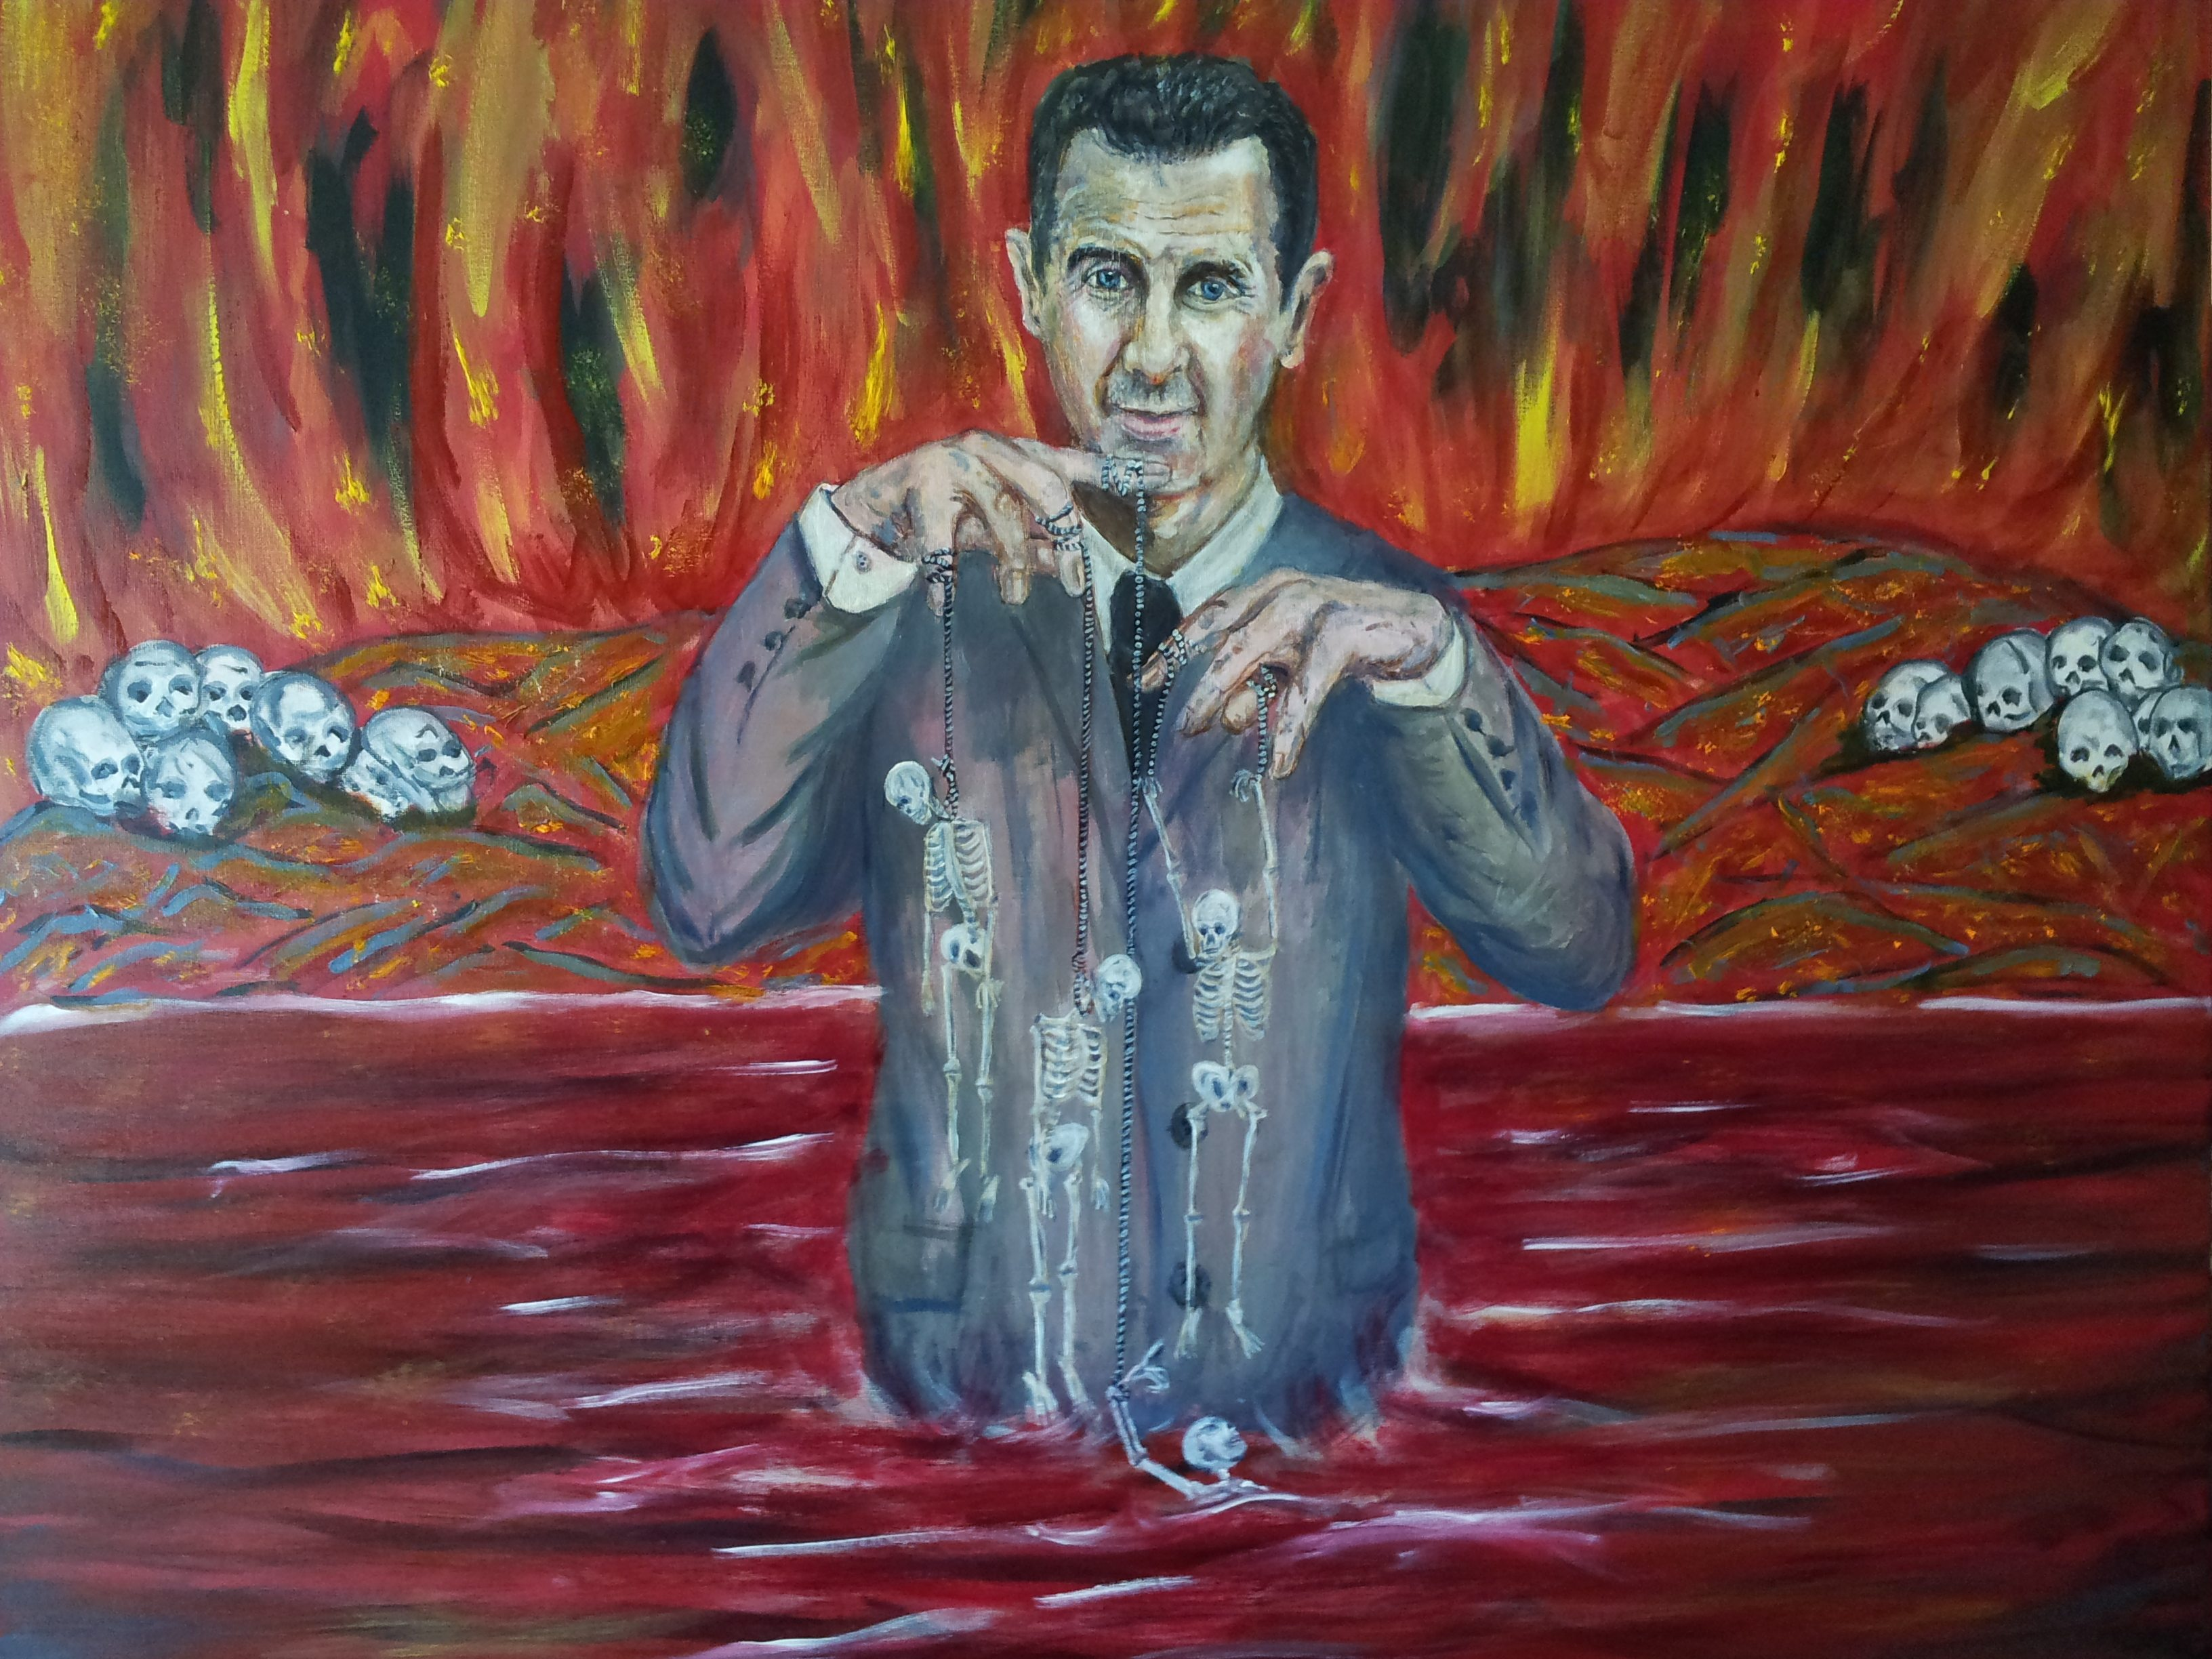 Assad Dynasty - Death's Puppeteers